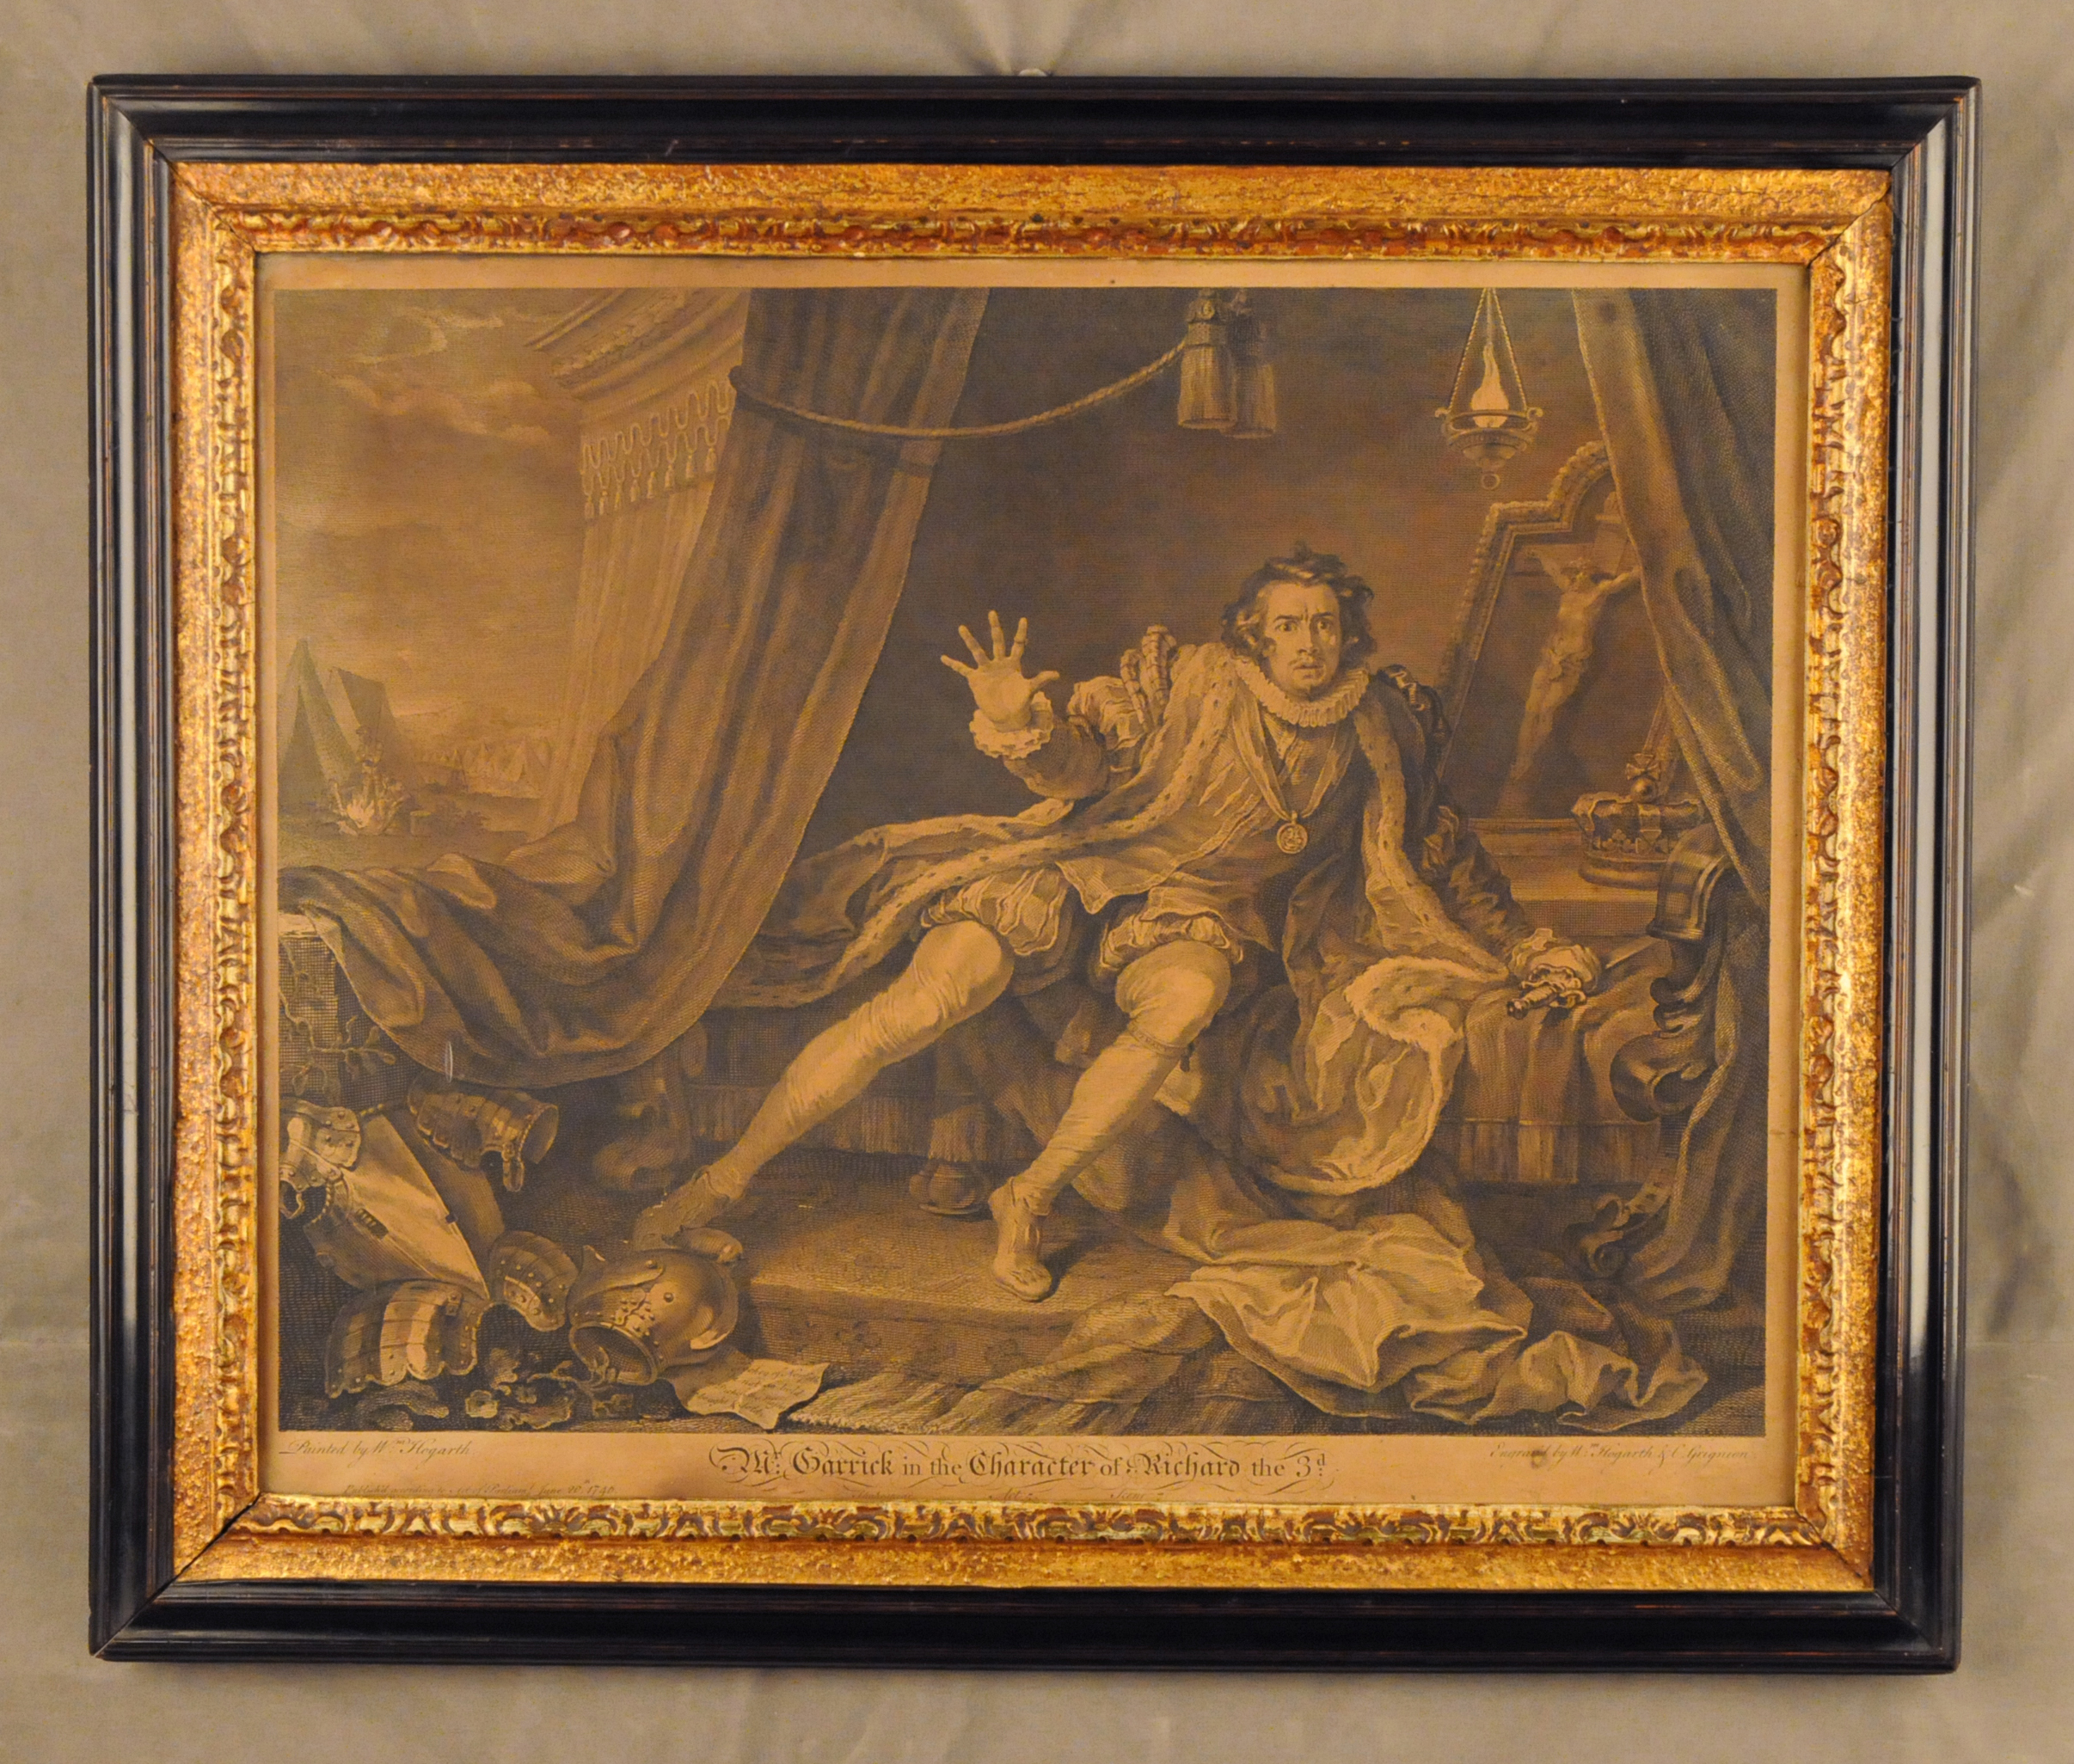 Hogarth Print - Mr Garrick in the Character of Richard the 3d, 1746 - Engraved by William Hogarth & C. Grignion in original Peartree frame with carved and gilded slip - Andrew Edmunds London